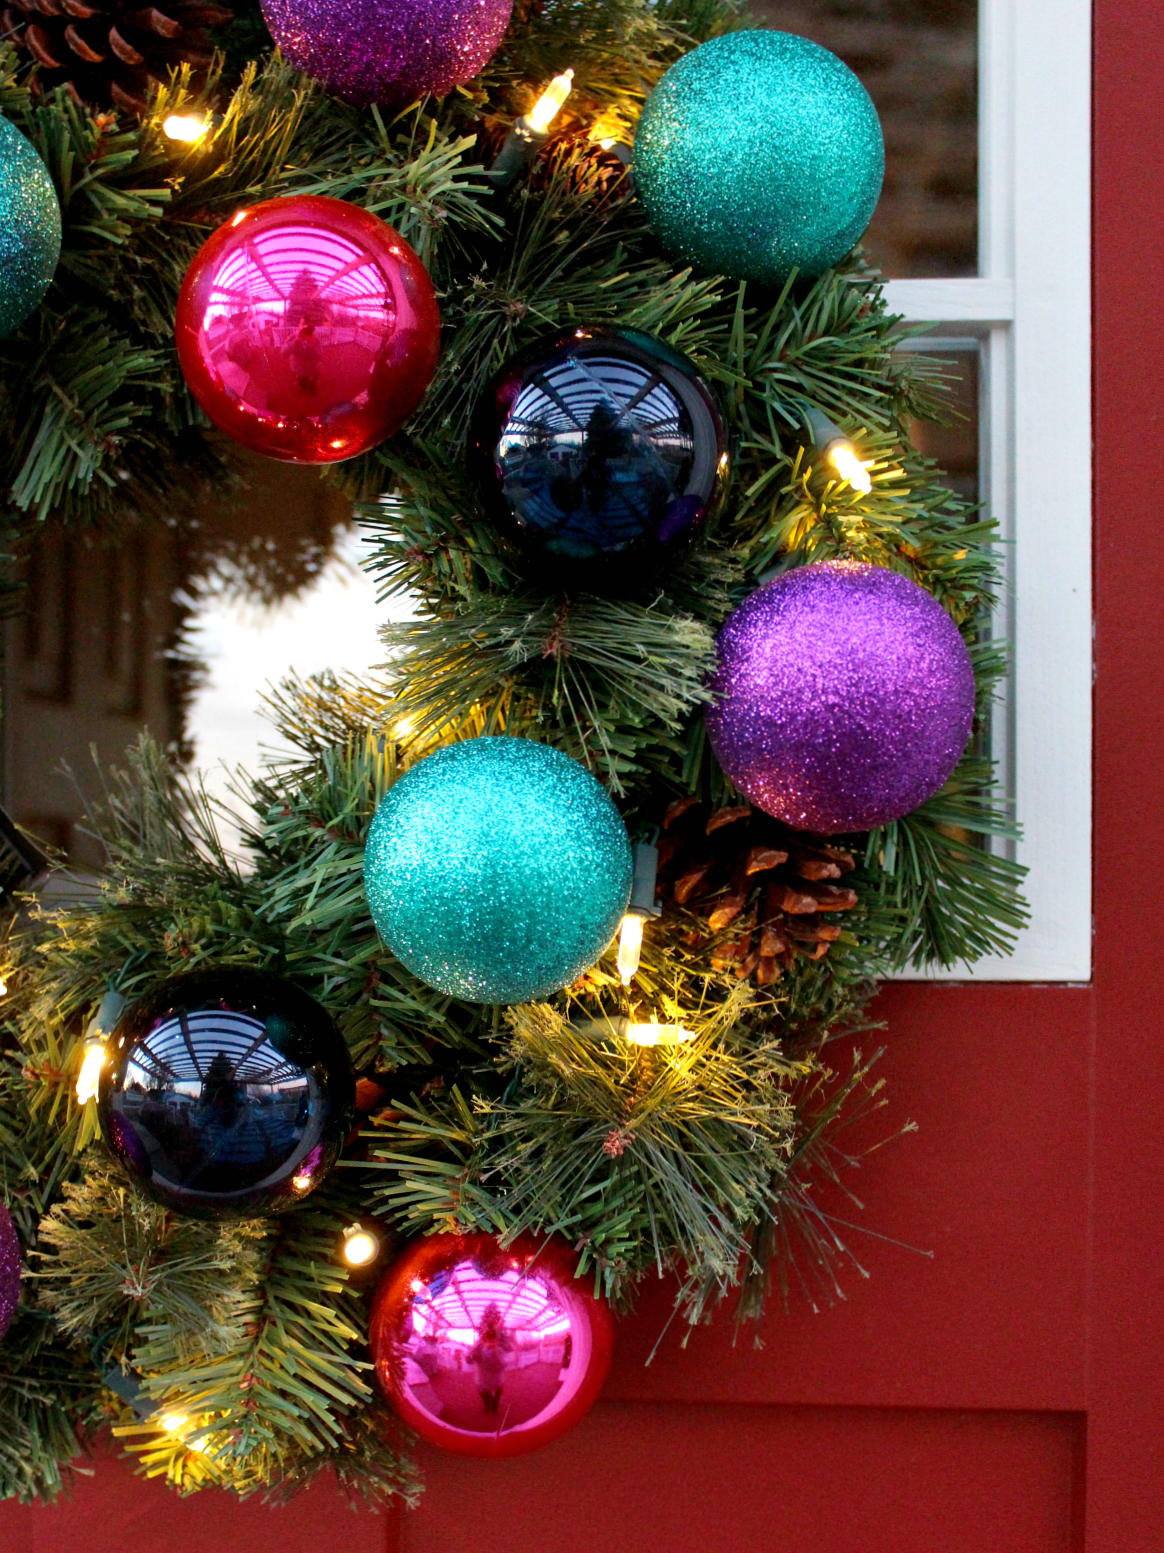 DIY COLOURFUL BAUBLE DOOR WREATH WITH LED LIGHTS